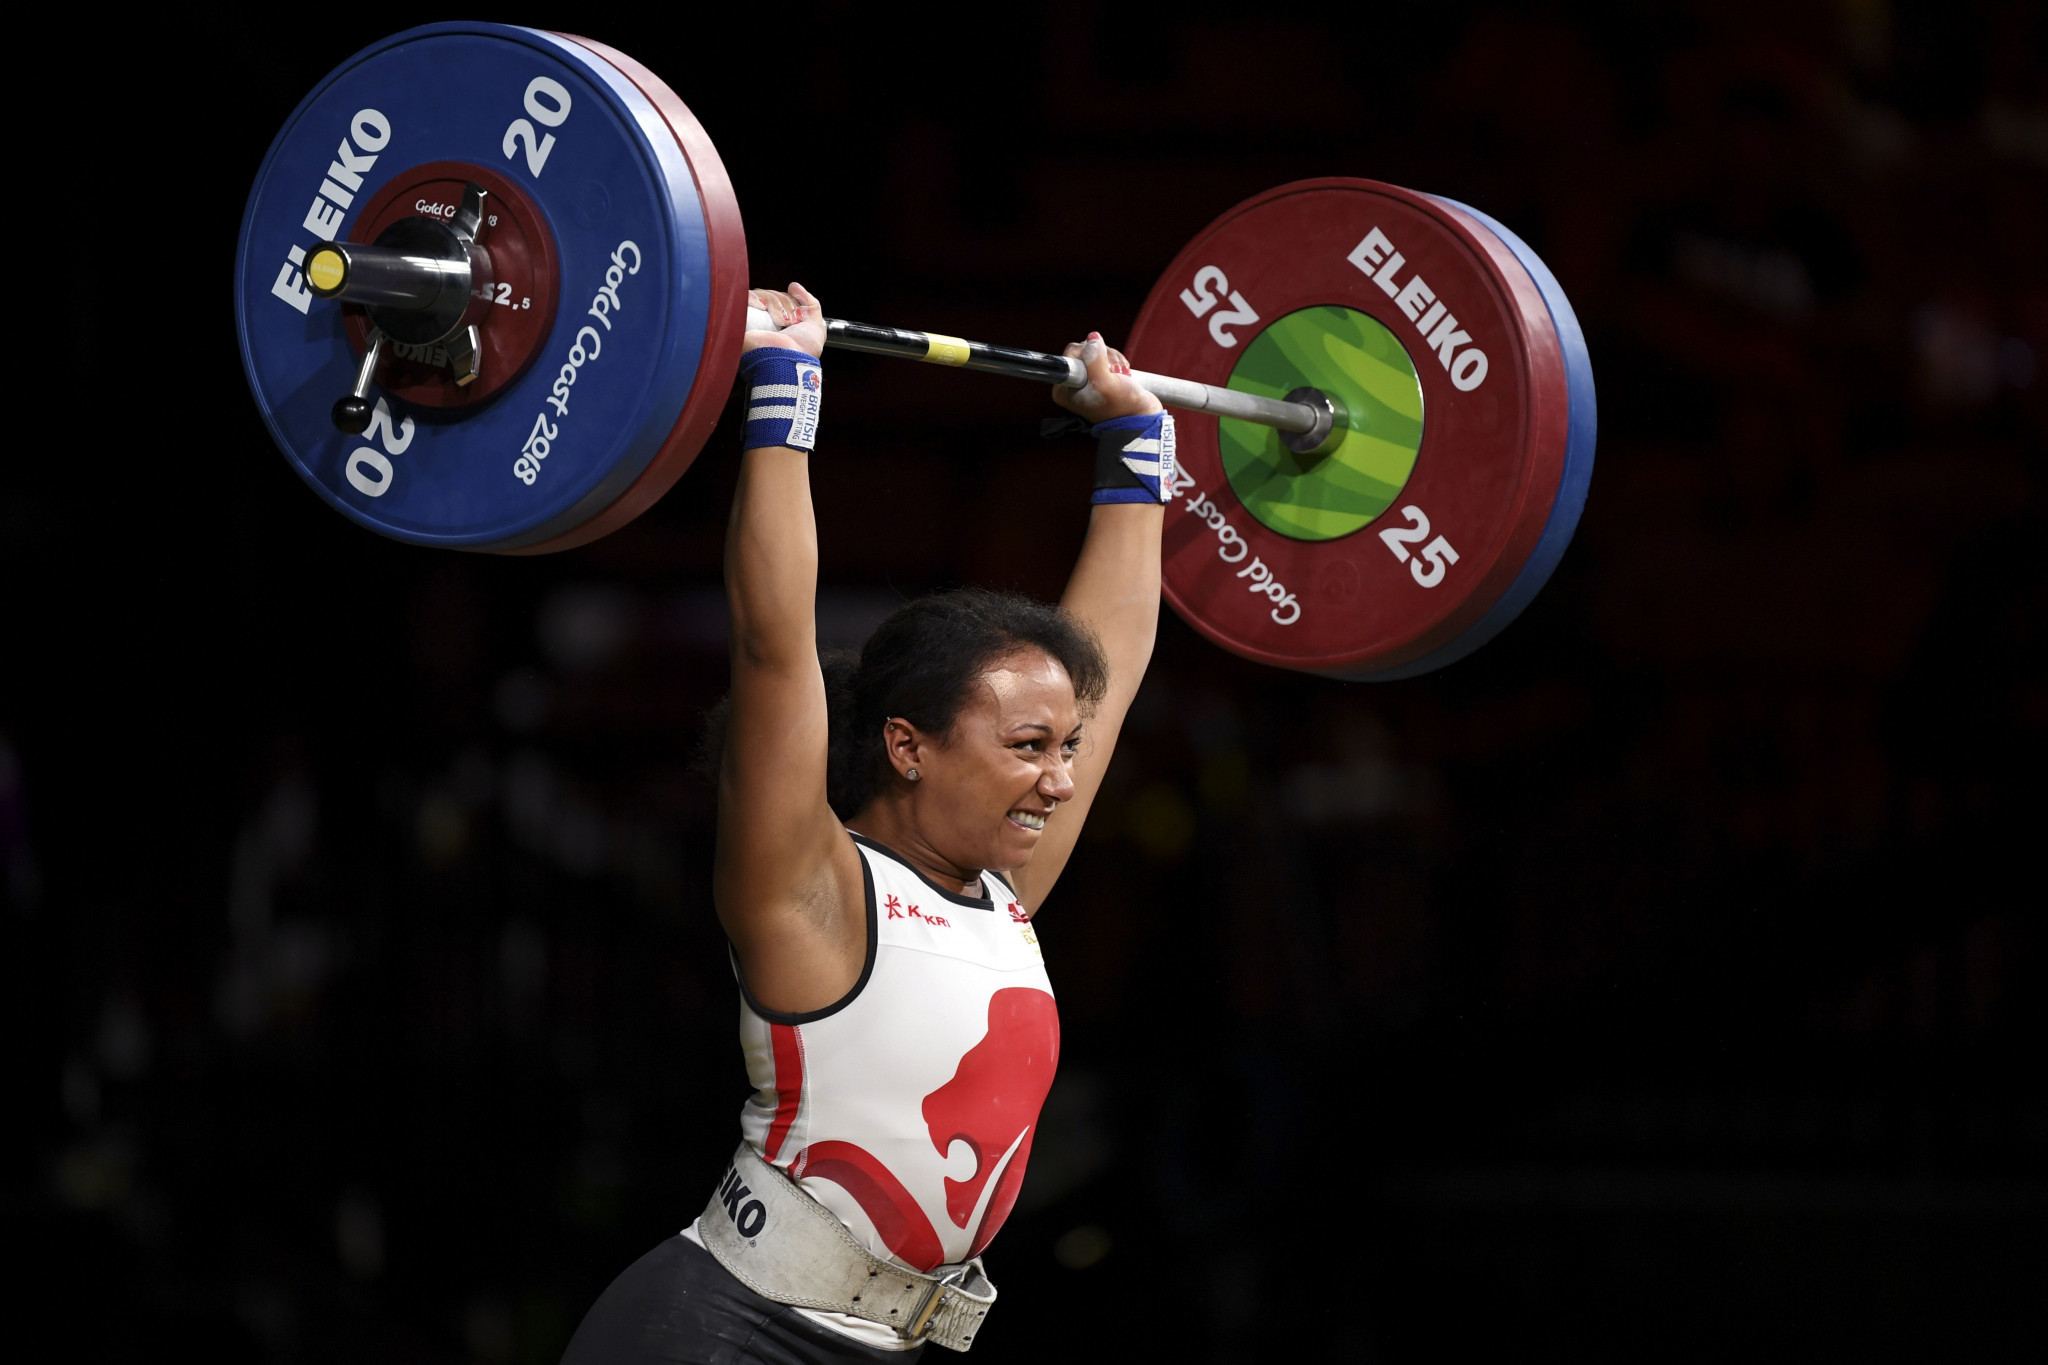 British weightlifting hopes could now rest with the likes of Zoe Smith ©Getty Images